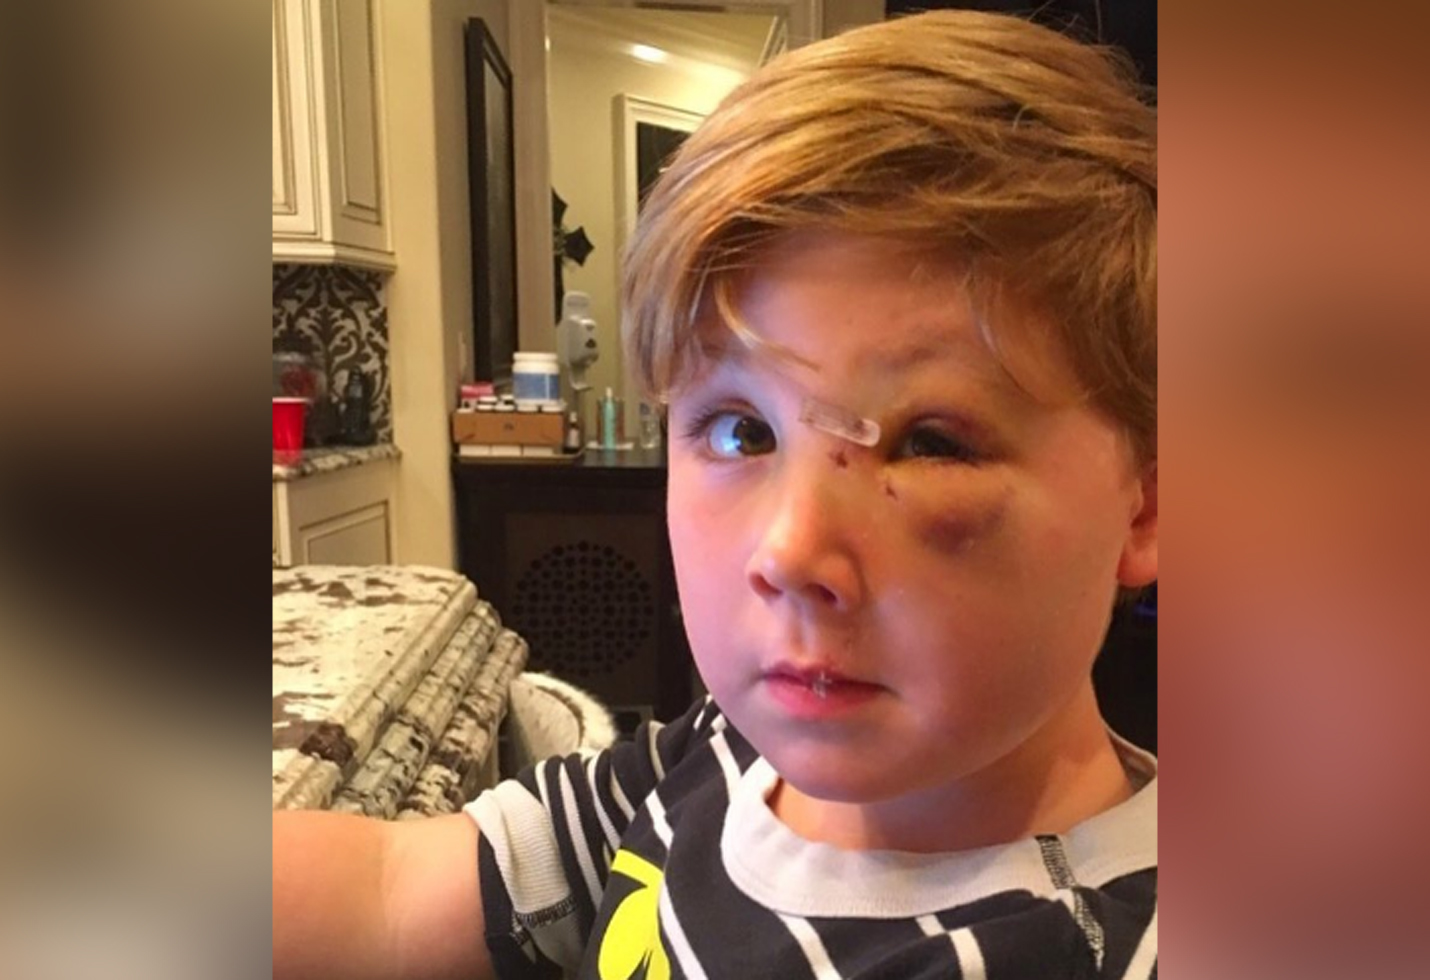 Kim zolciak updates fans on sons recovery following brutal dog attack hero star